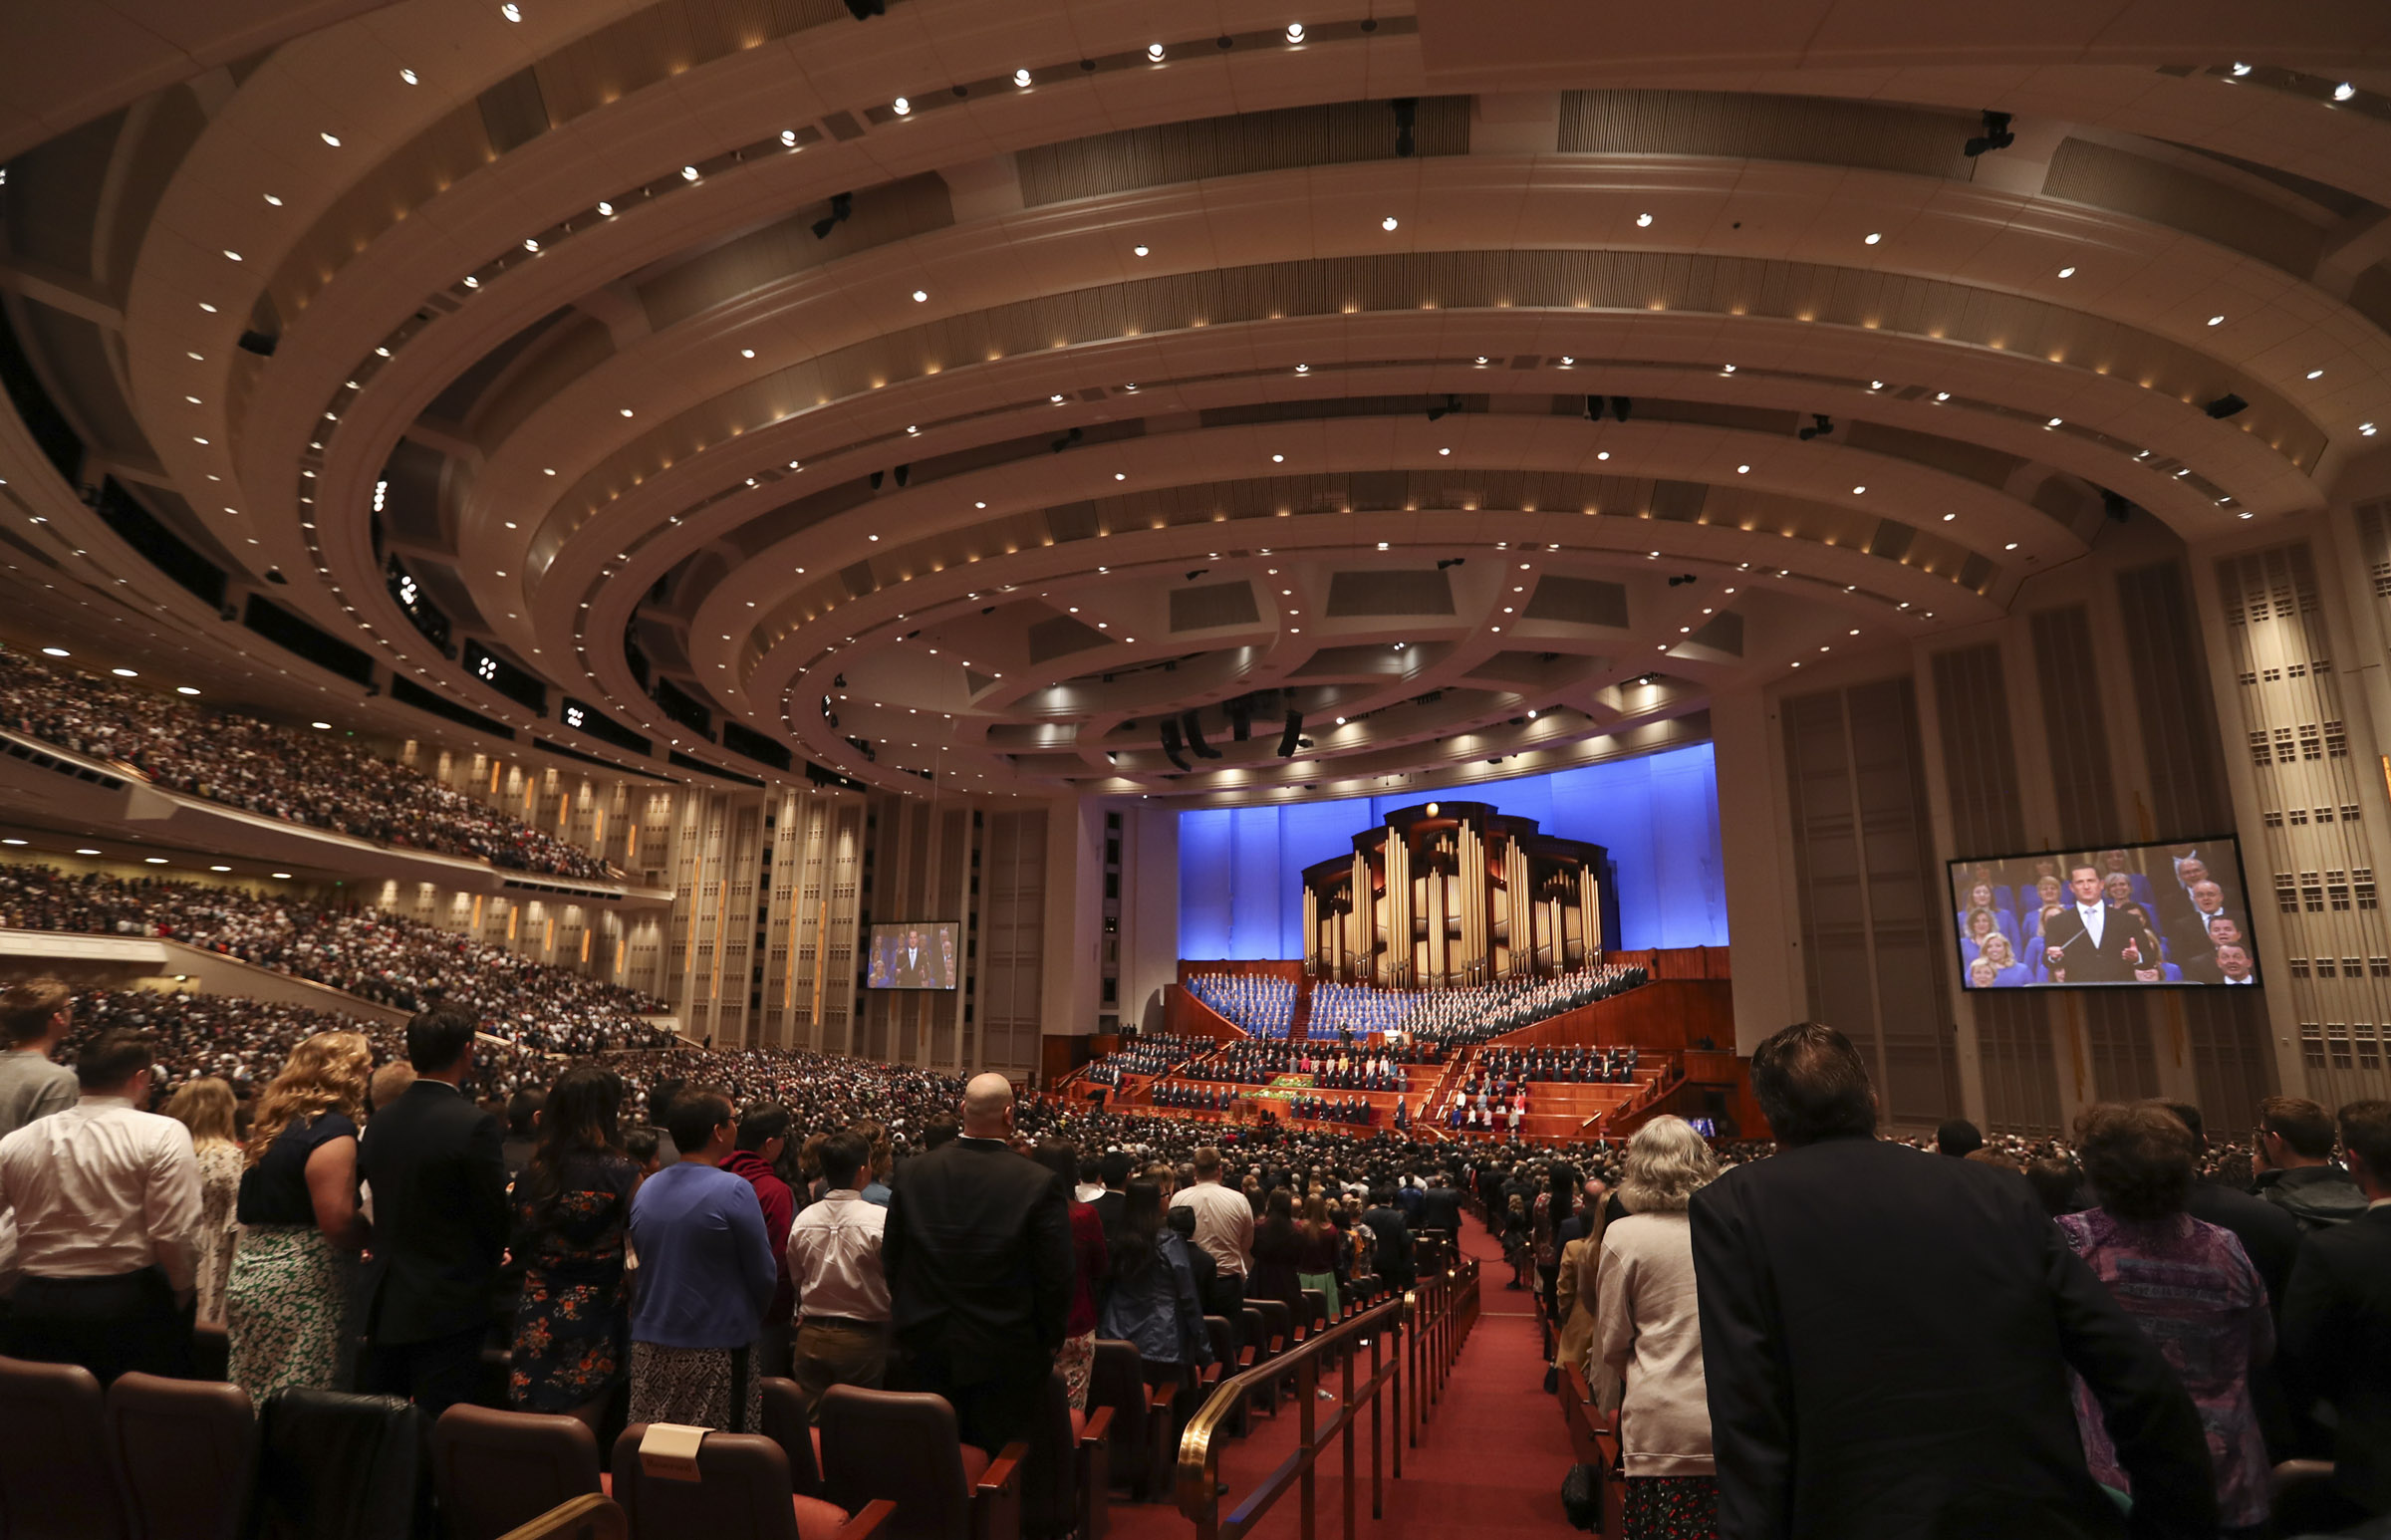 Latter-day Saints stand and sing with The Tabernacle Choir at Temple Square in the Conference Center in Salt Lake City during the morning session of the 189th Annual General Conference of The Church of Jesus Christ of Latter-day Saints on Saturday, April 6, 2019.